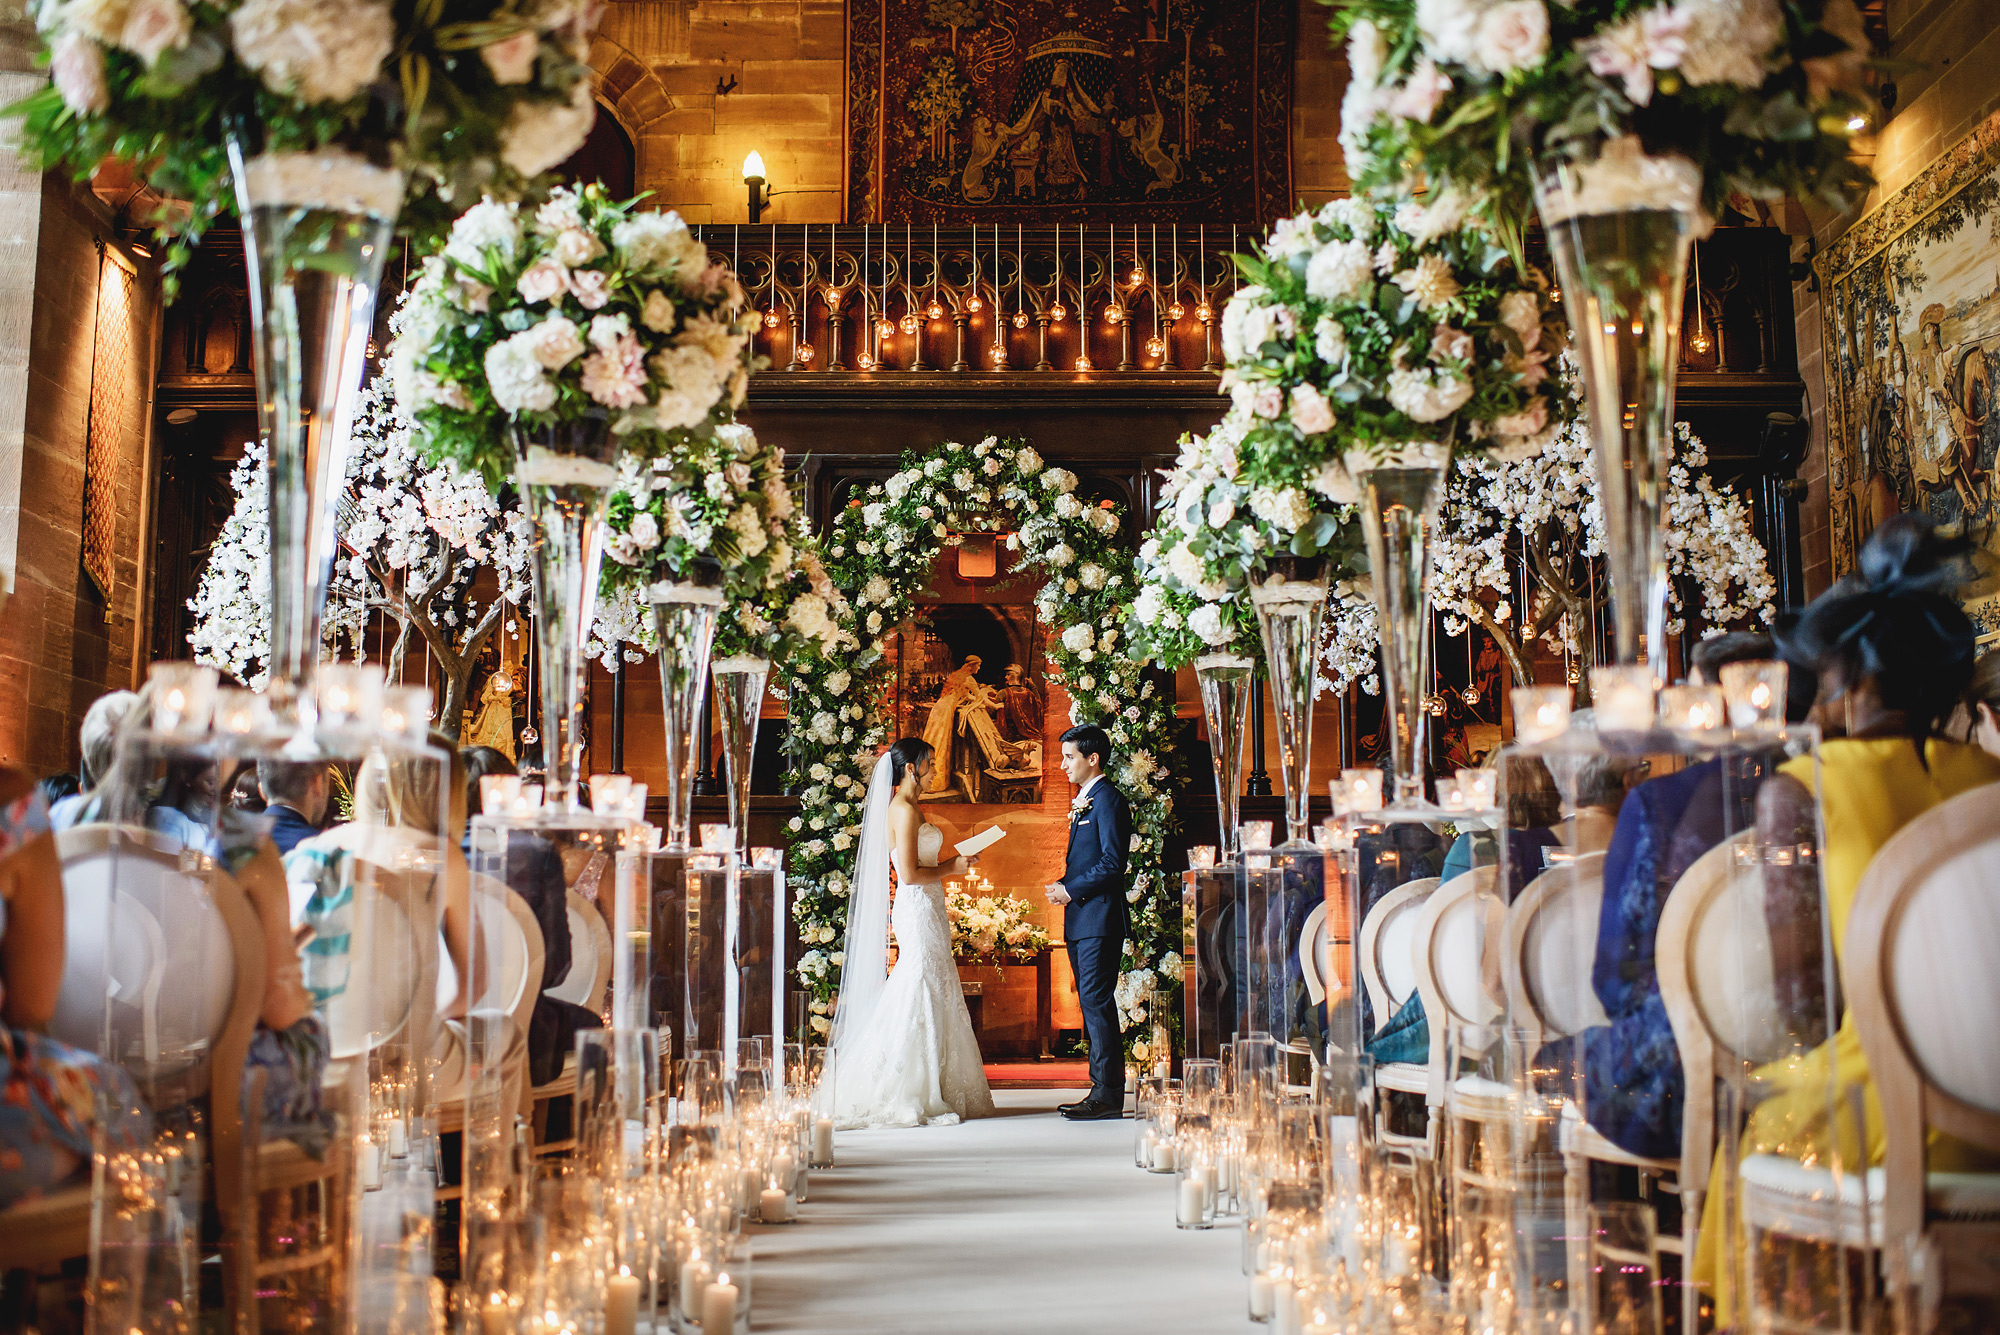 Ceremony with tall glass flower vases - photo by Ross Harvey